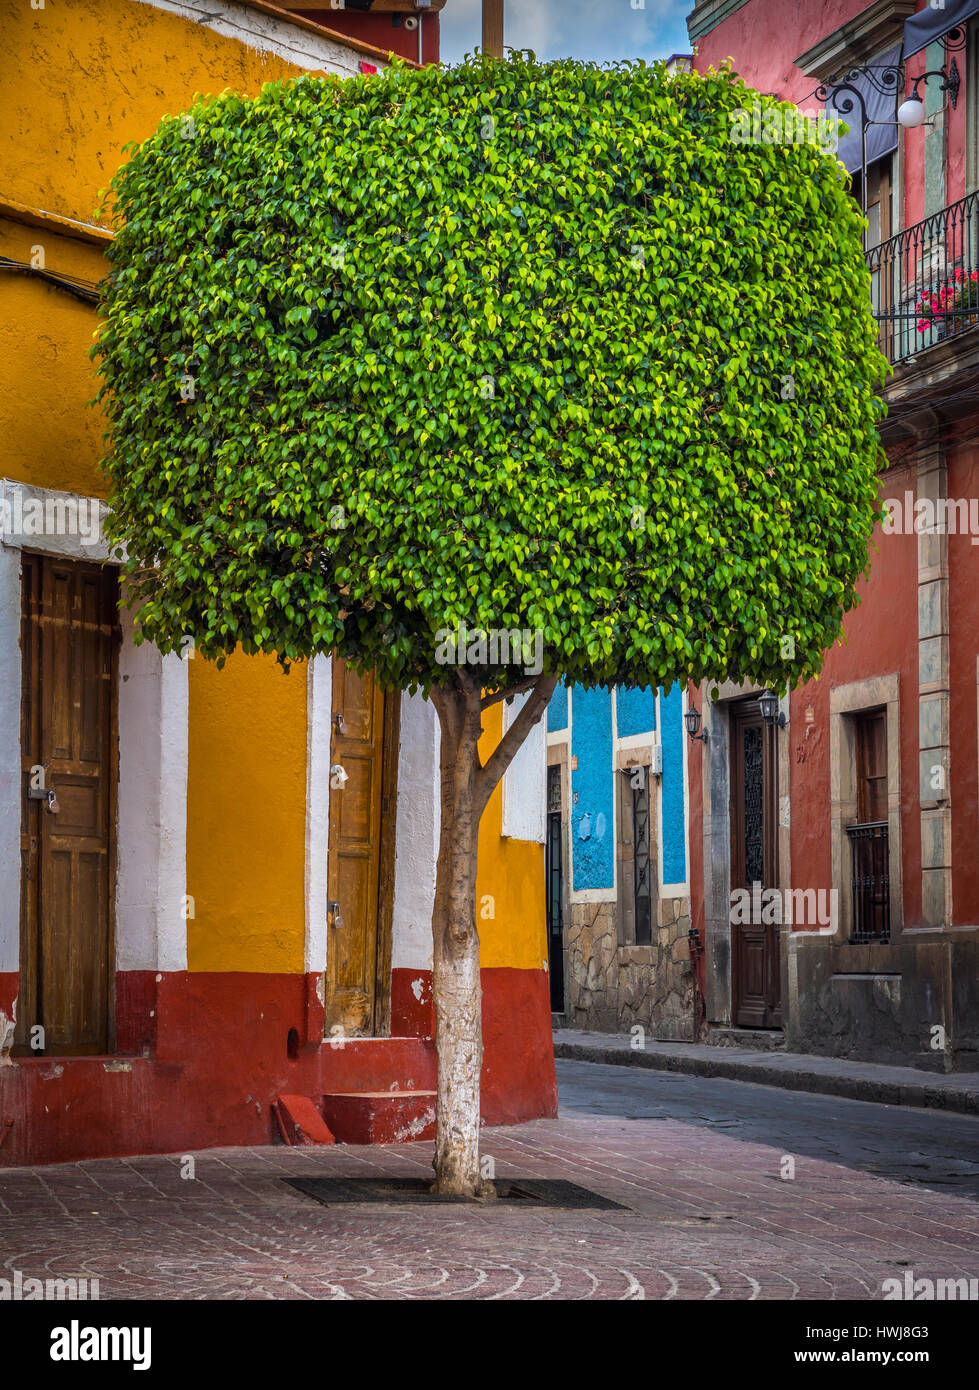 Manicured tree in the historical center of Guanajuato, Mexico ------ Guanajuato is a city and municipality in central - Stock Image